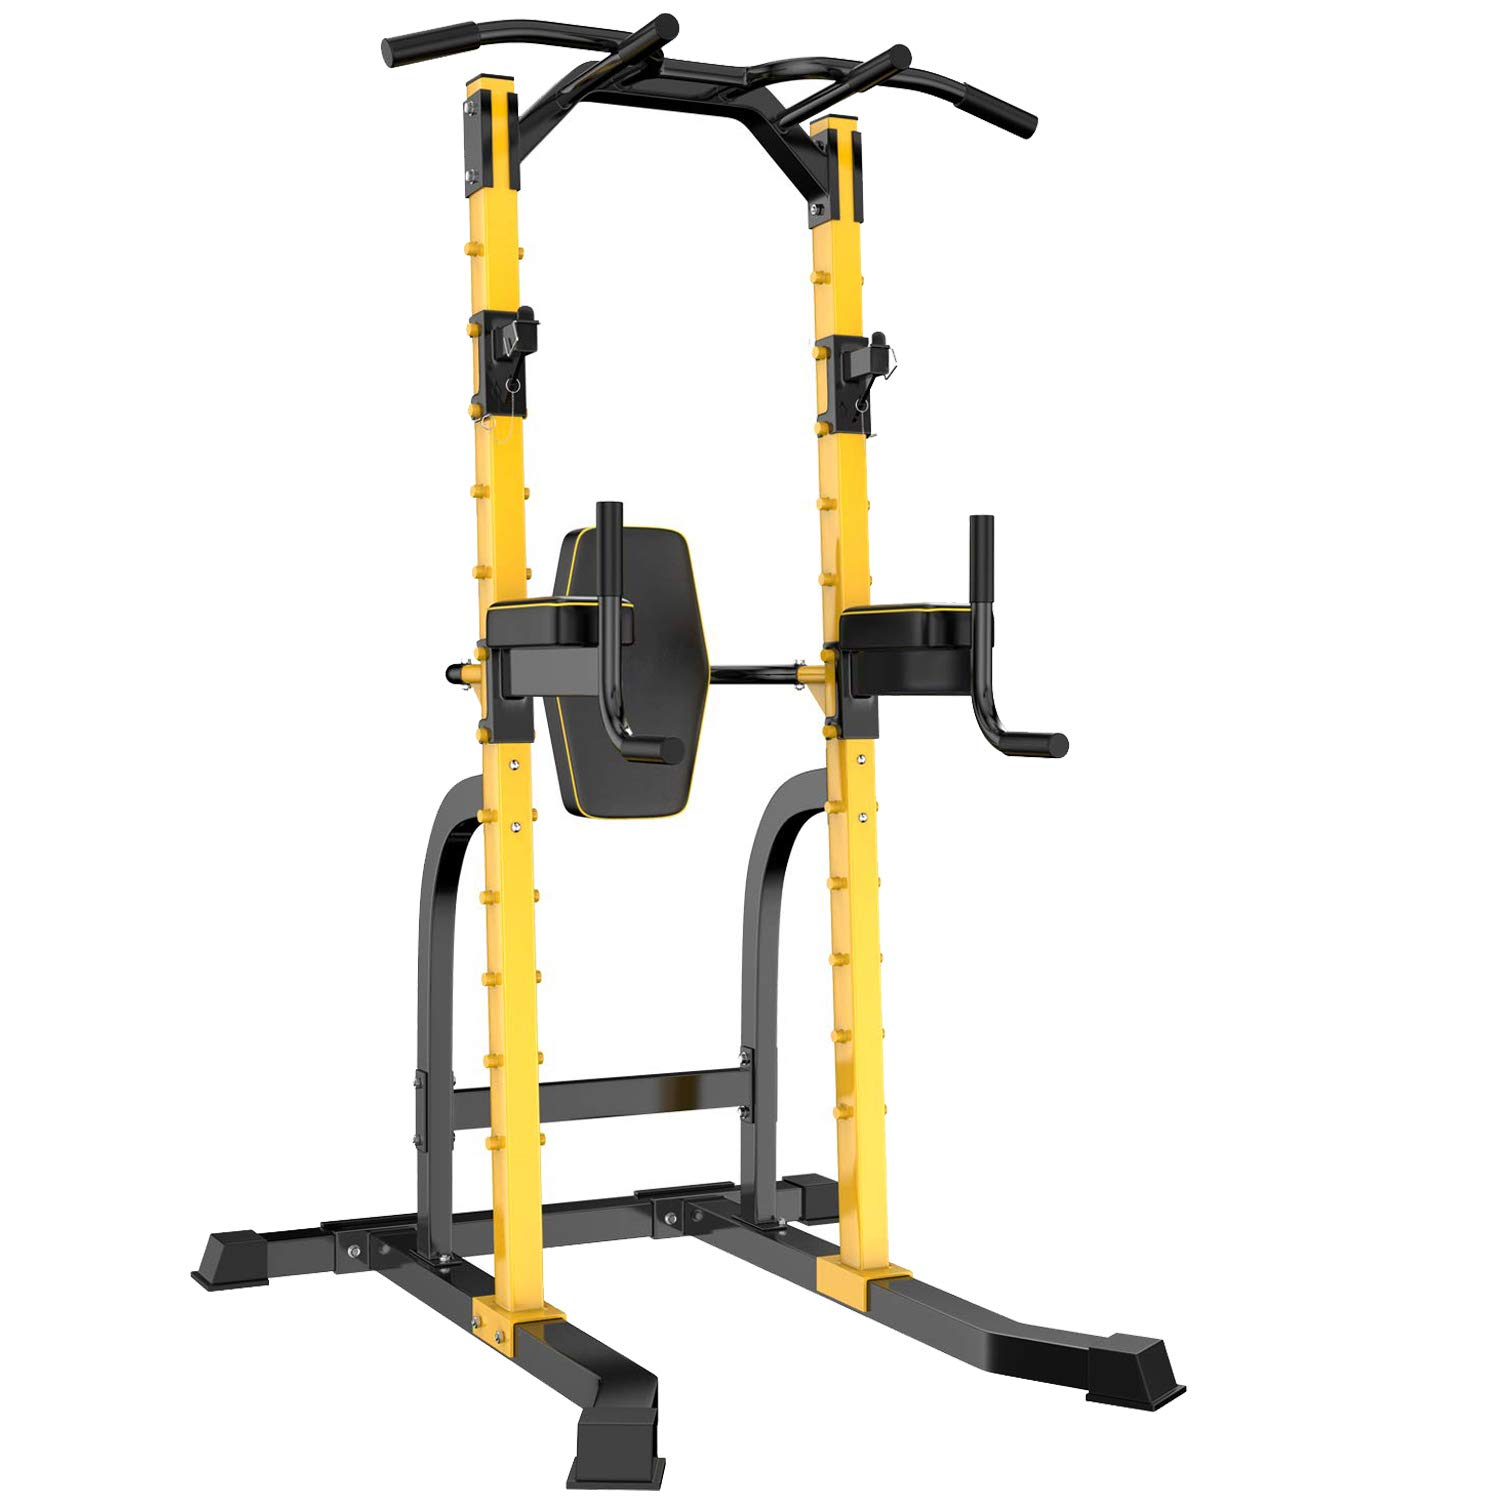 HI MAT Adjustable Multi Function Strength Equipment